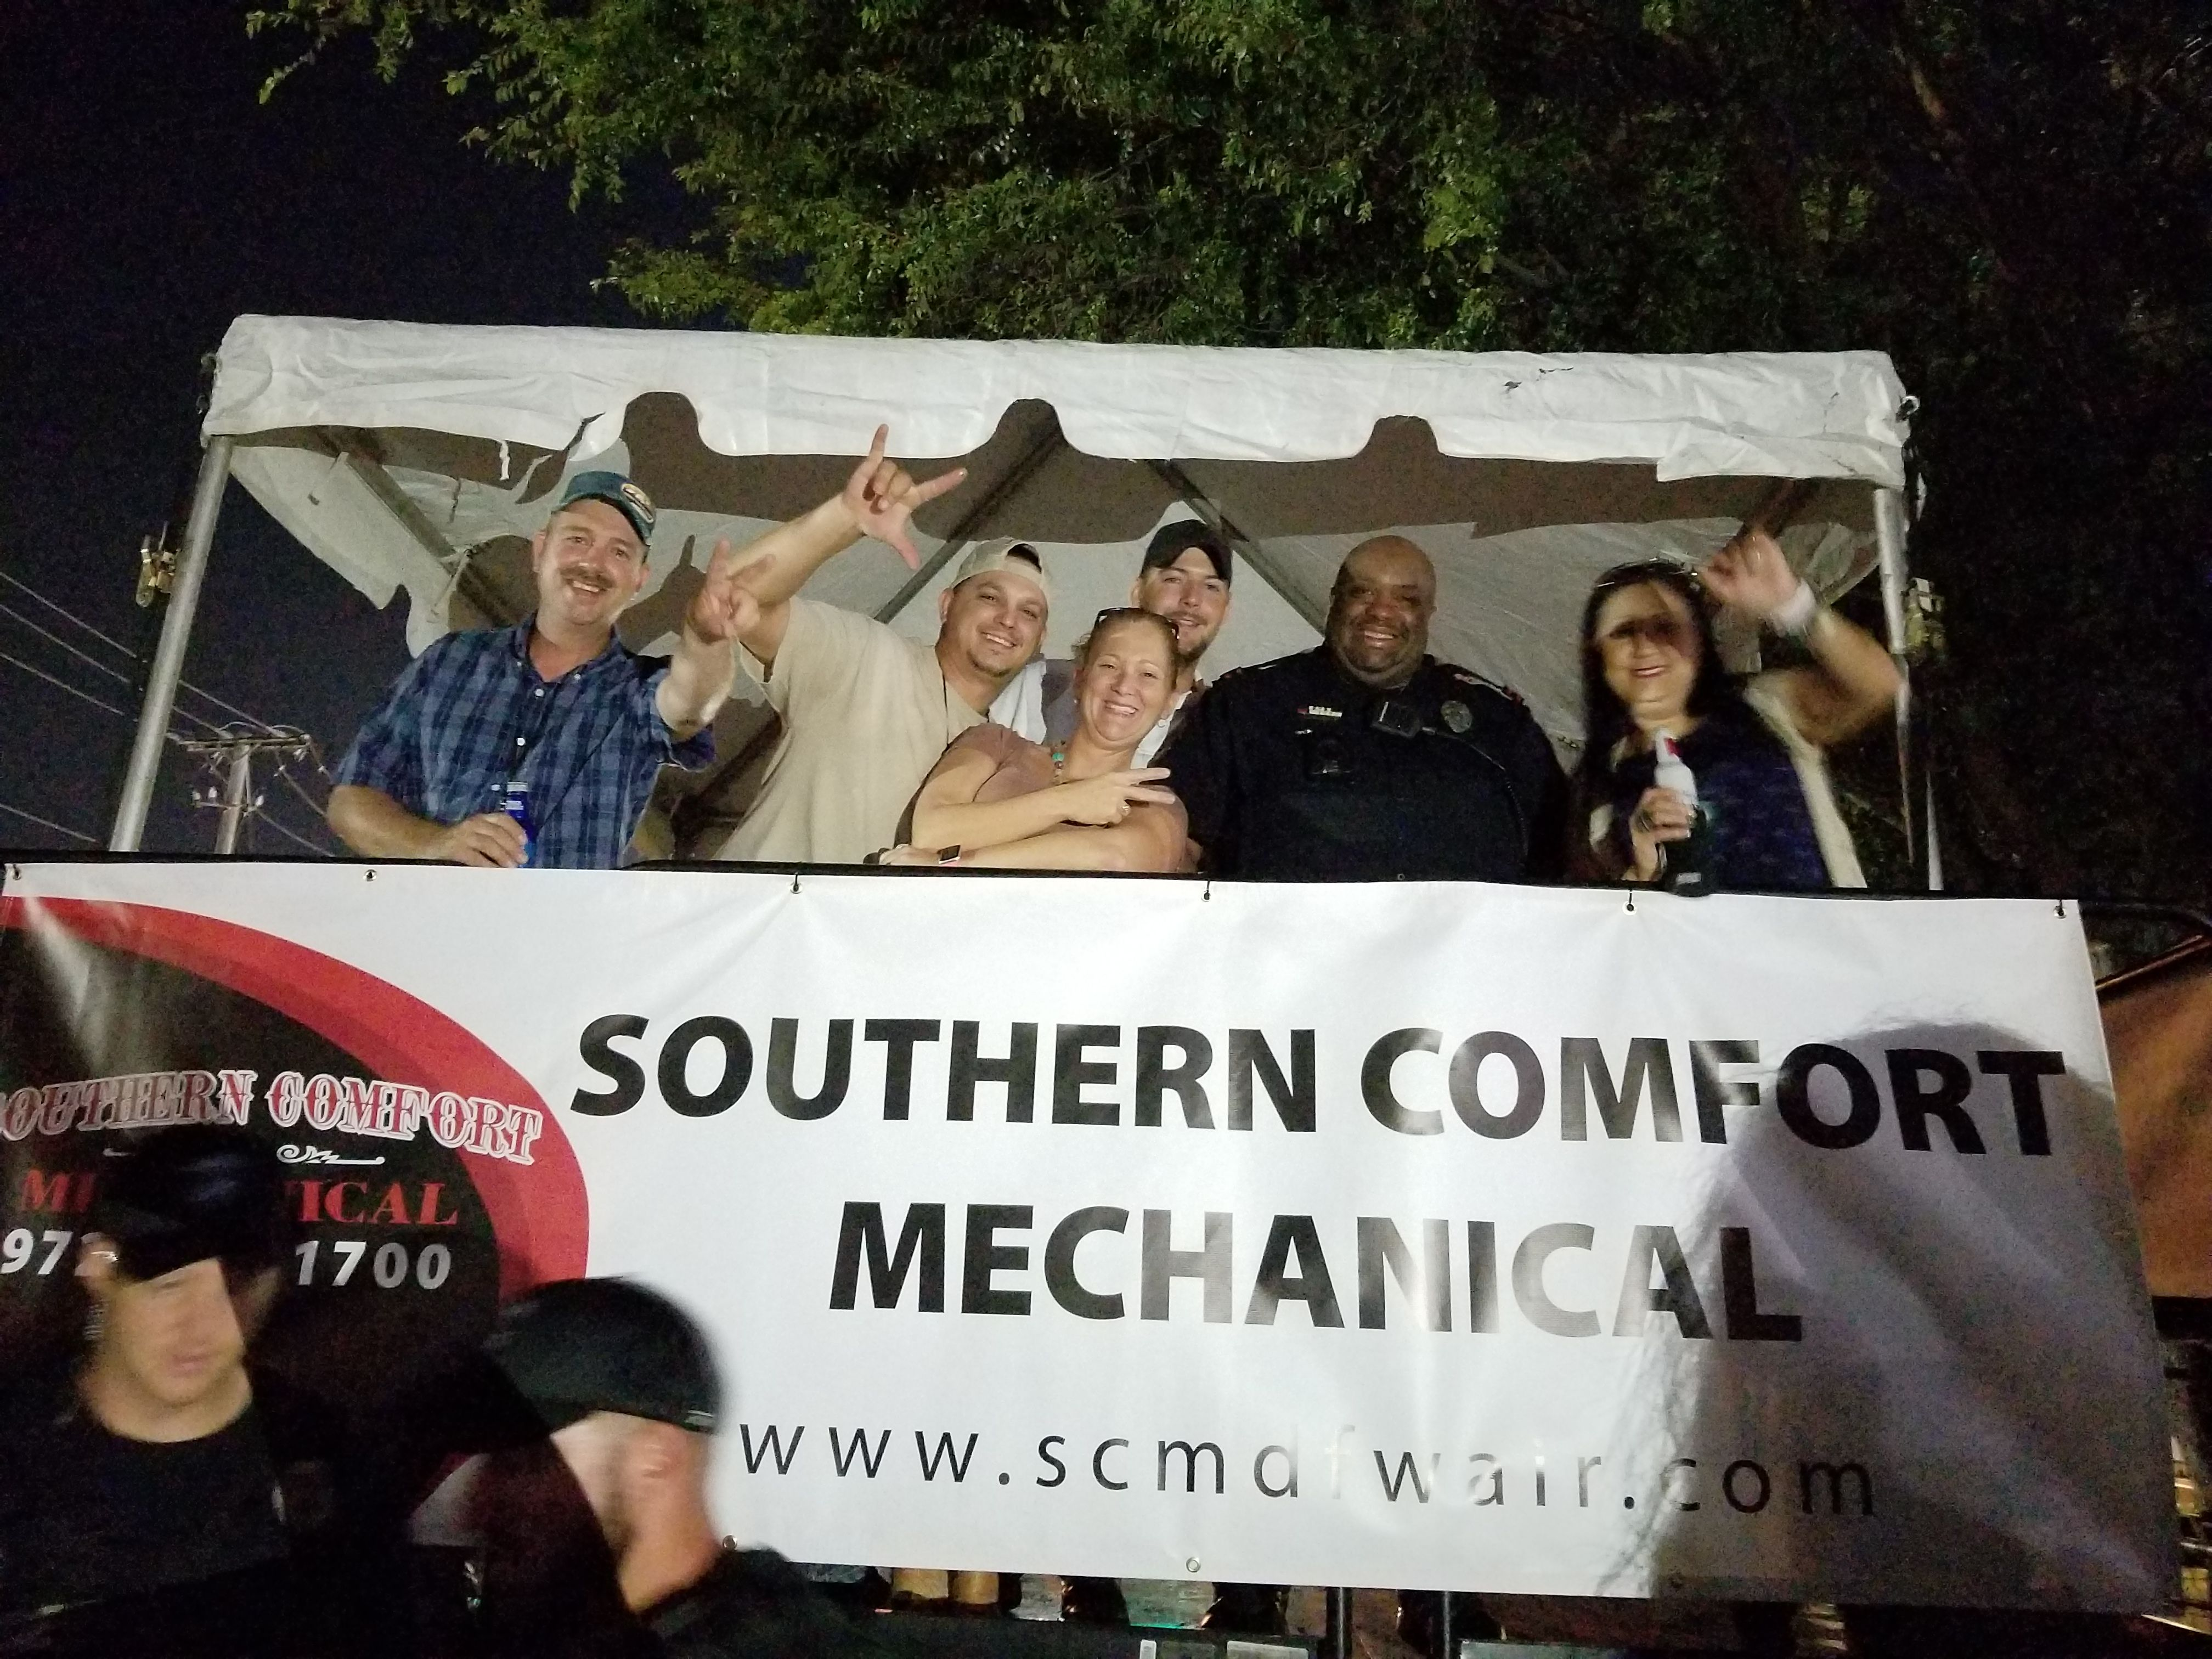 Welcome To Southern Comfort Mechanical Prides Itself In Bringing